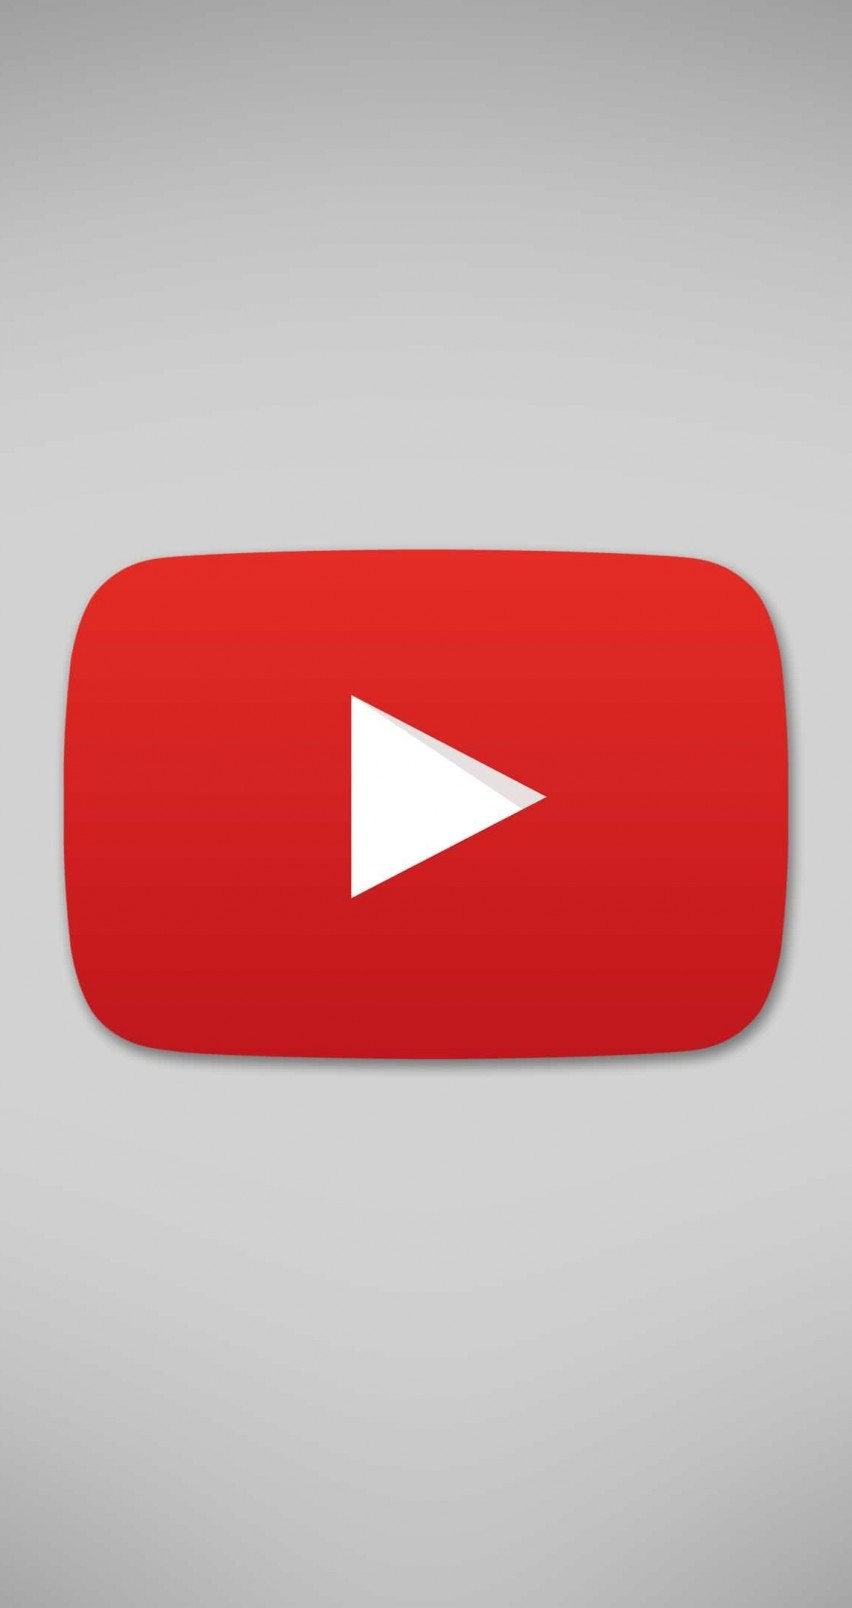 Youtube Logo Makeup: YouTube Logo HD Wallpaper For IPhone 6 / 6s Screens